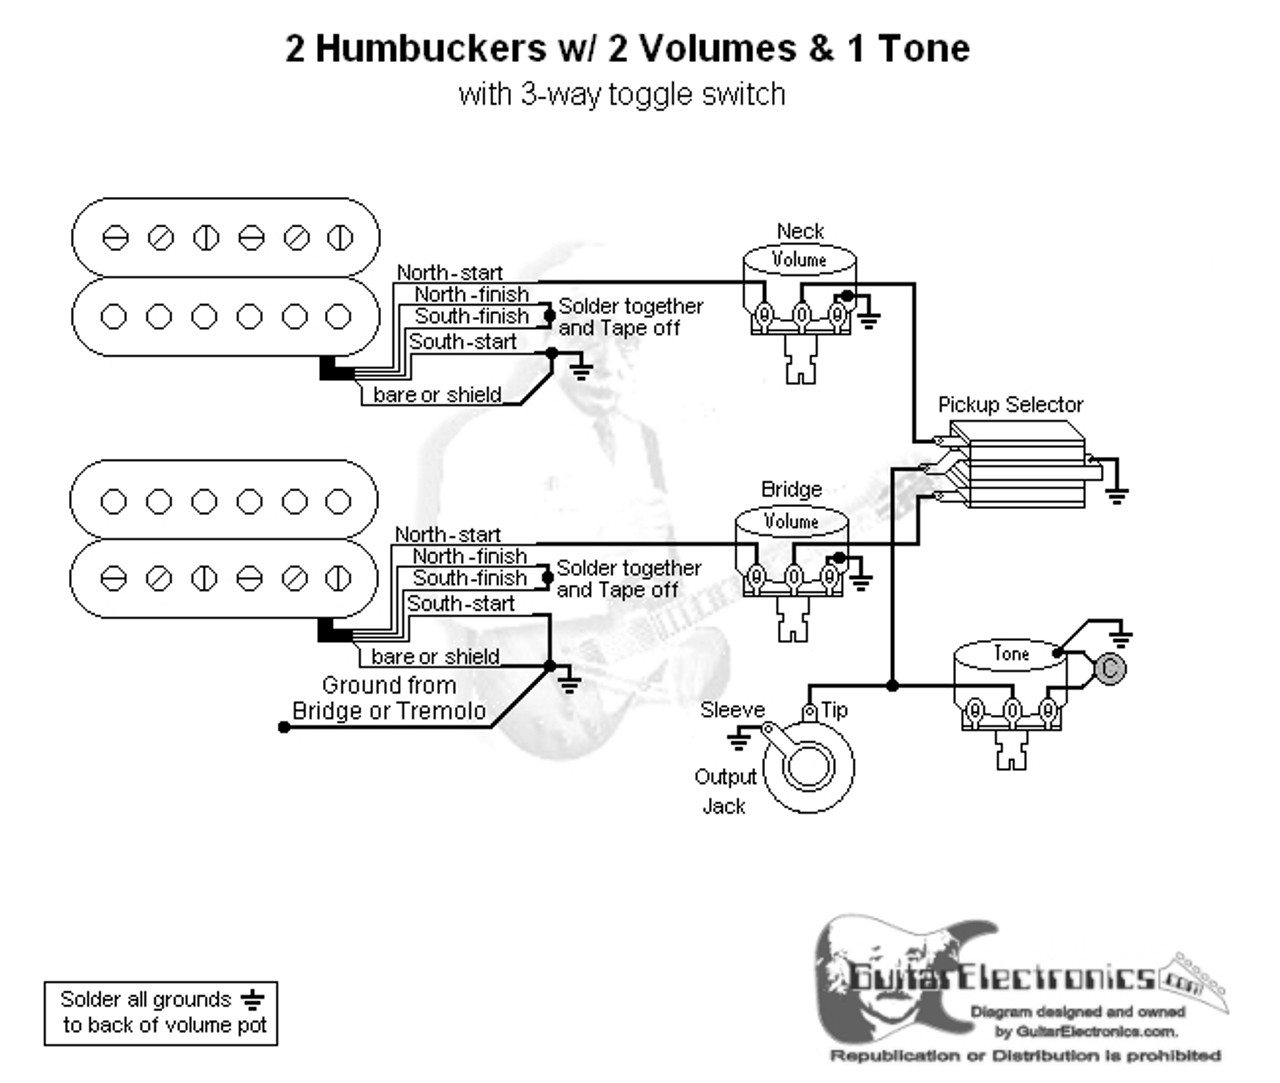 3 Way Toggle Switch Wiring Diagram: 2 Humbuckers/3-Way Toggle Switch/2 Volumes/1 Tonerh:guitarelectronics.com,Design